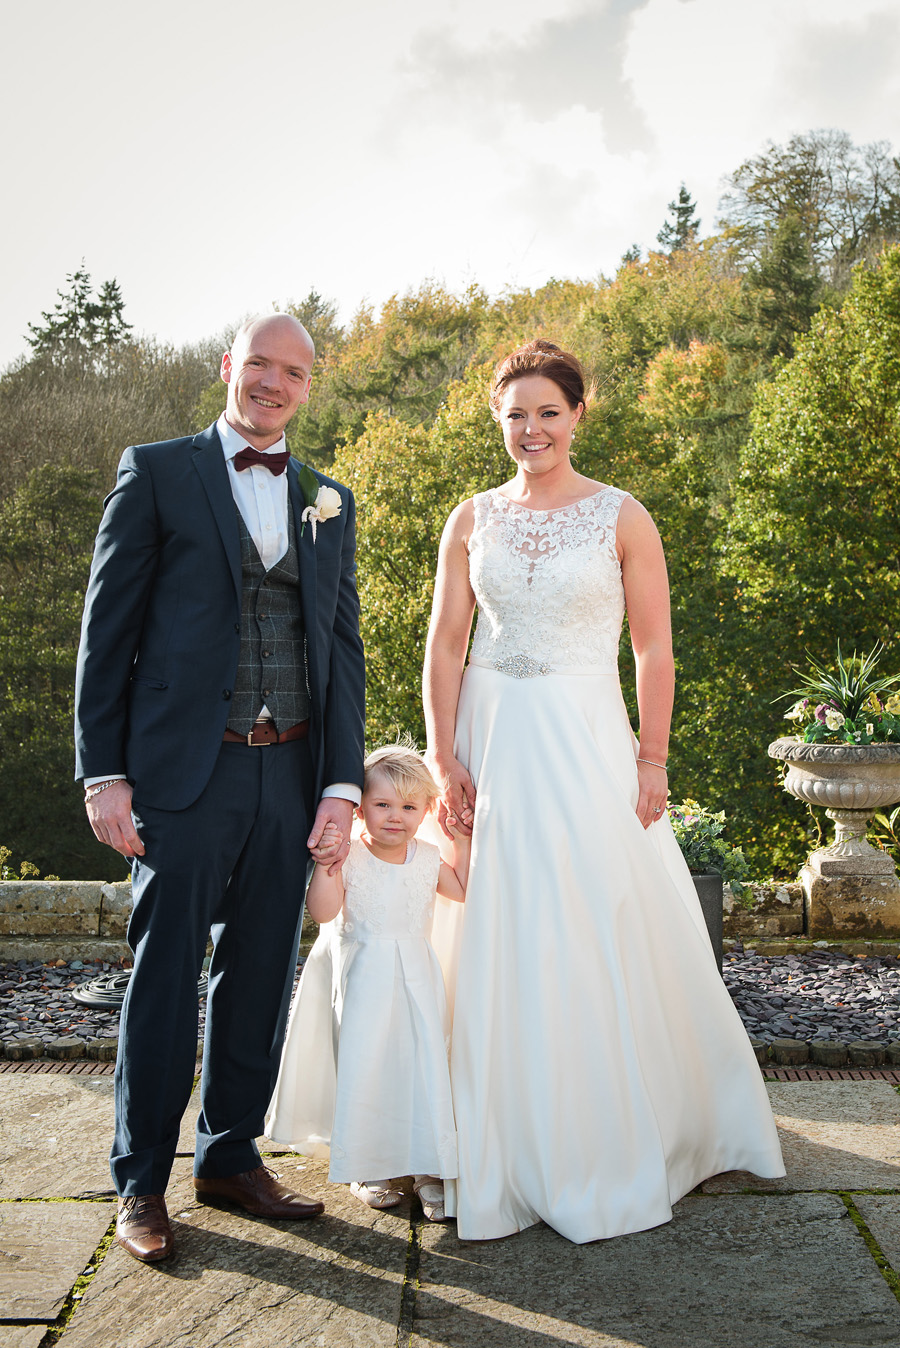 Stunning real wedding at Salomons Estate, images by Penny Young Photography (32)